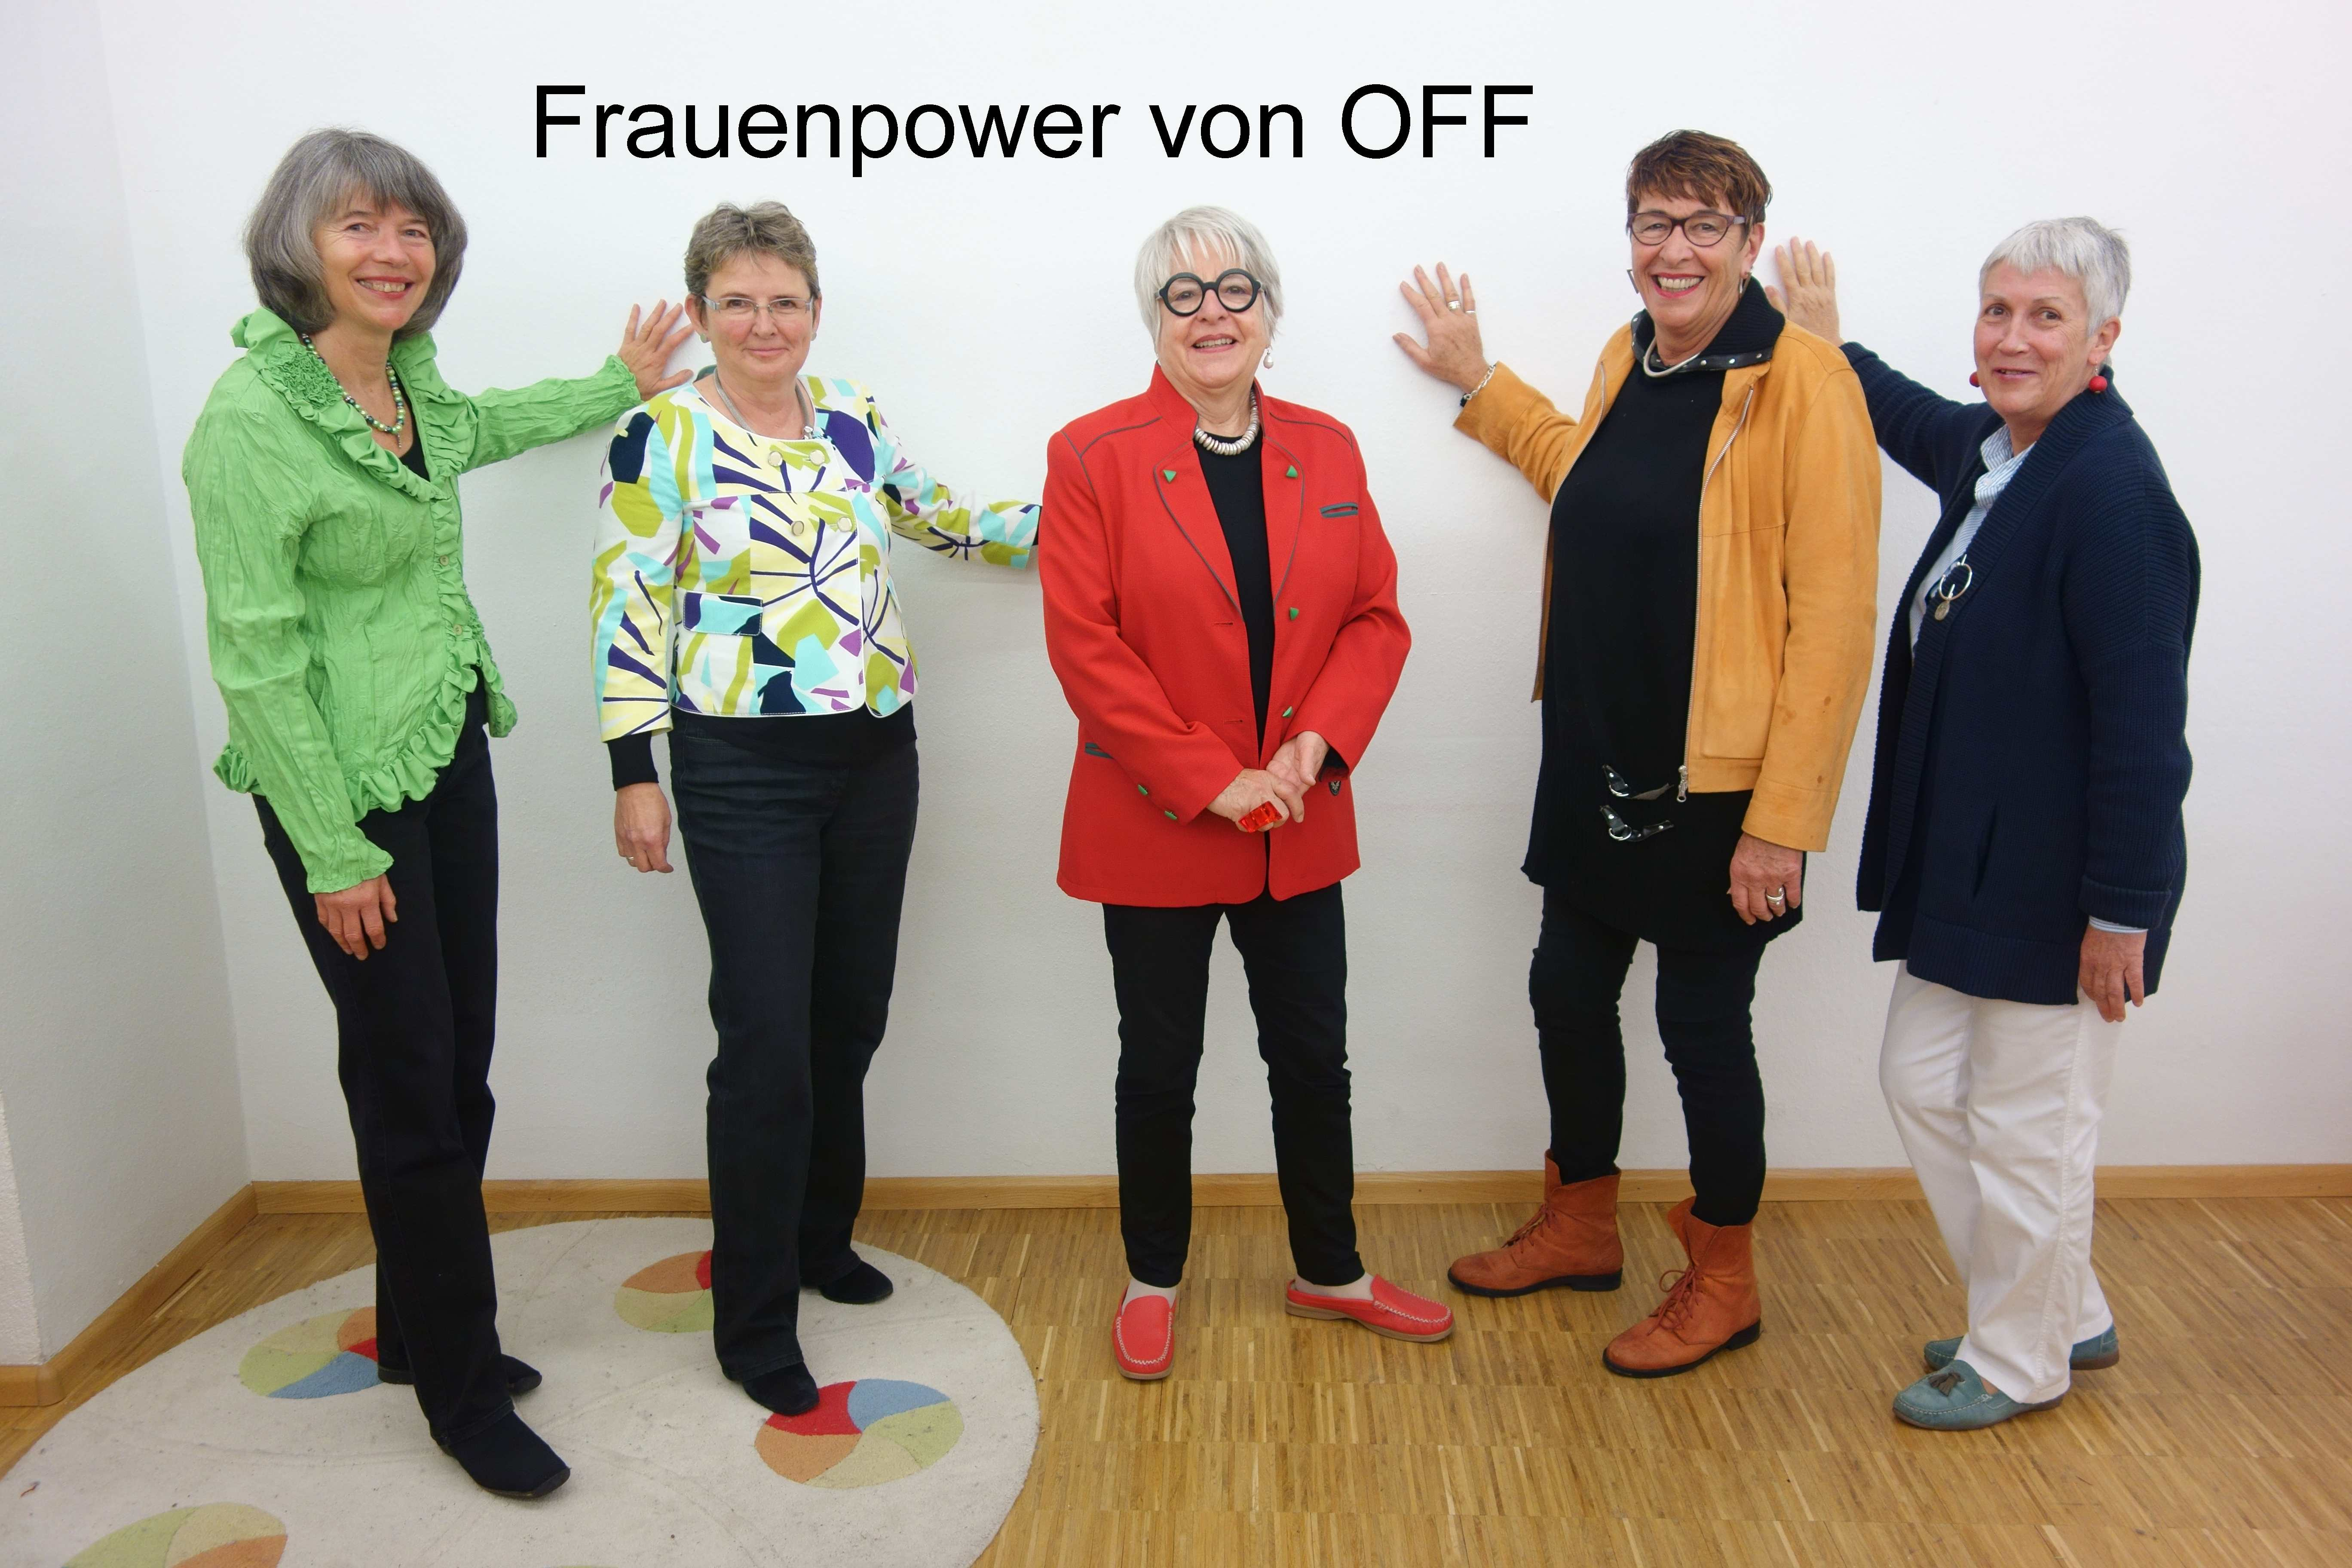 Frauenpower von OFF